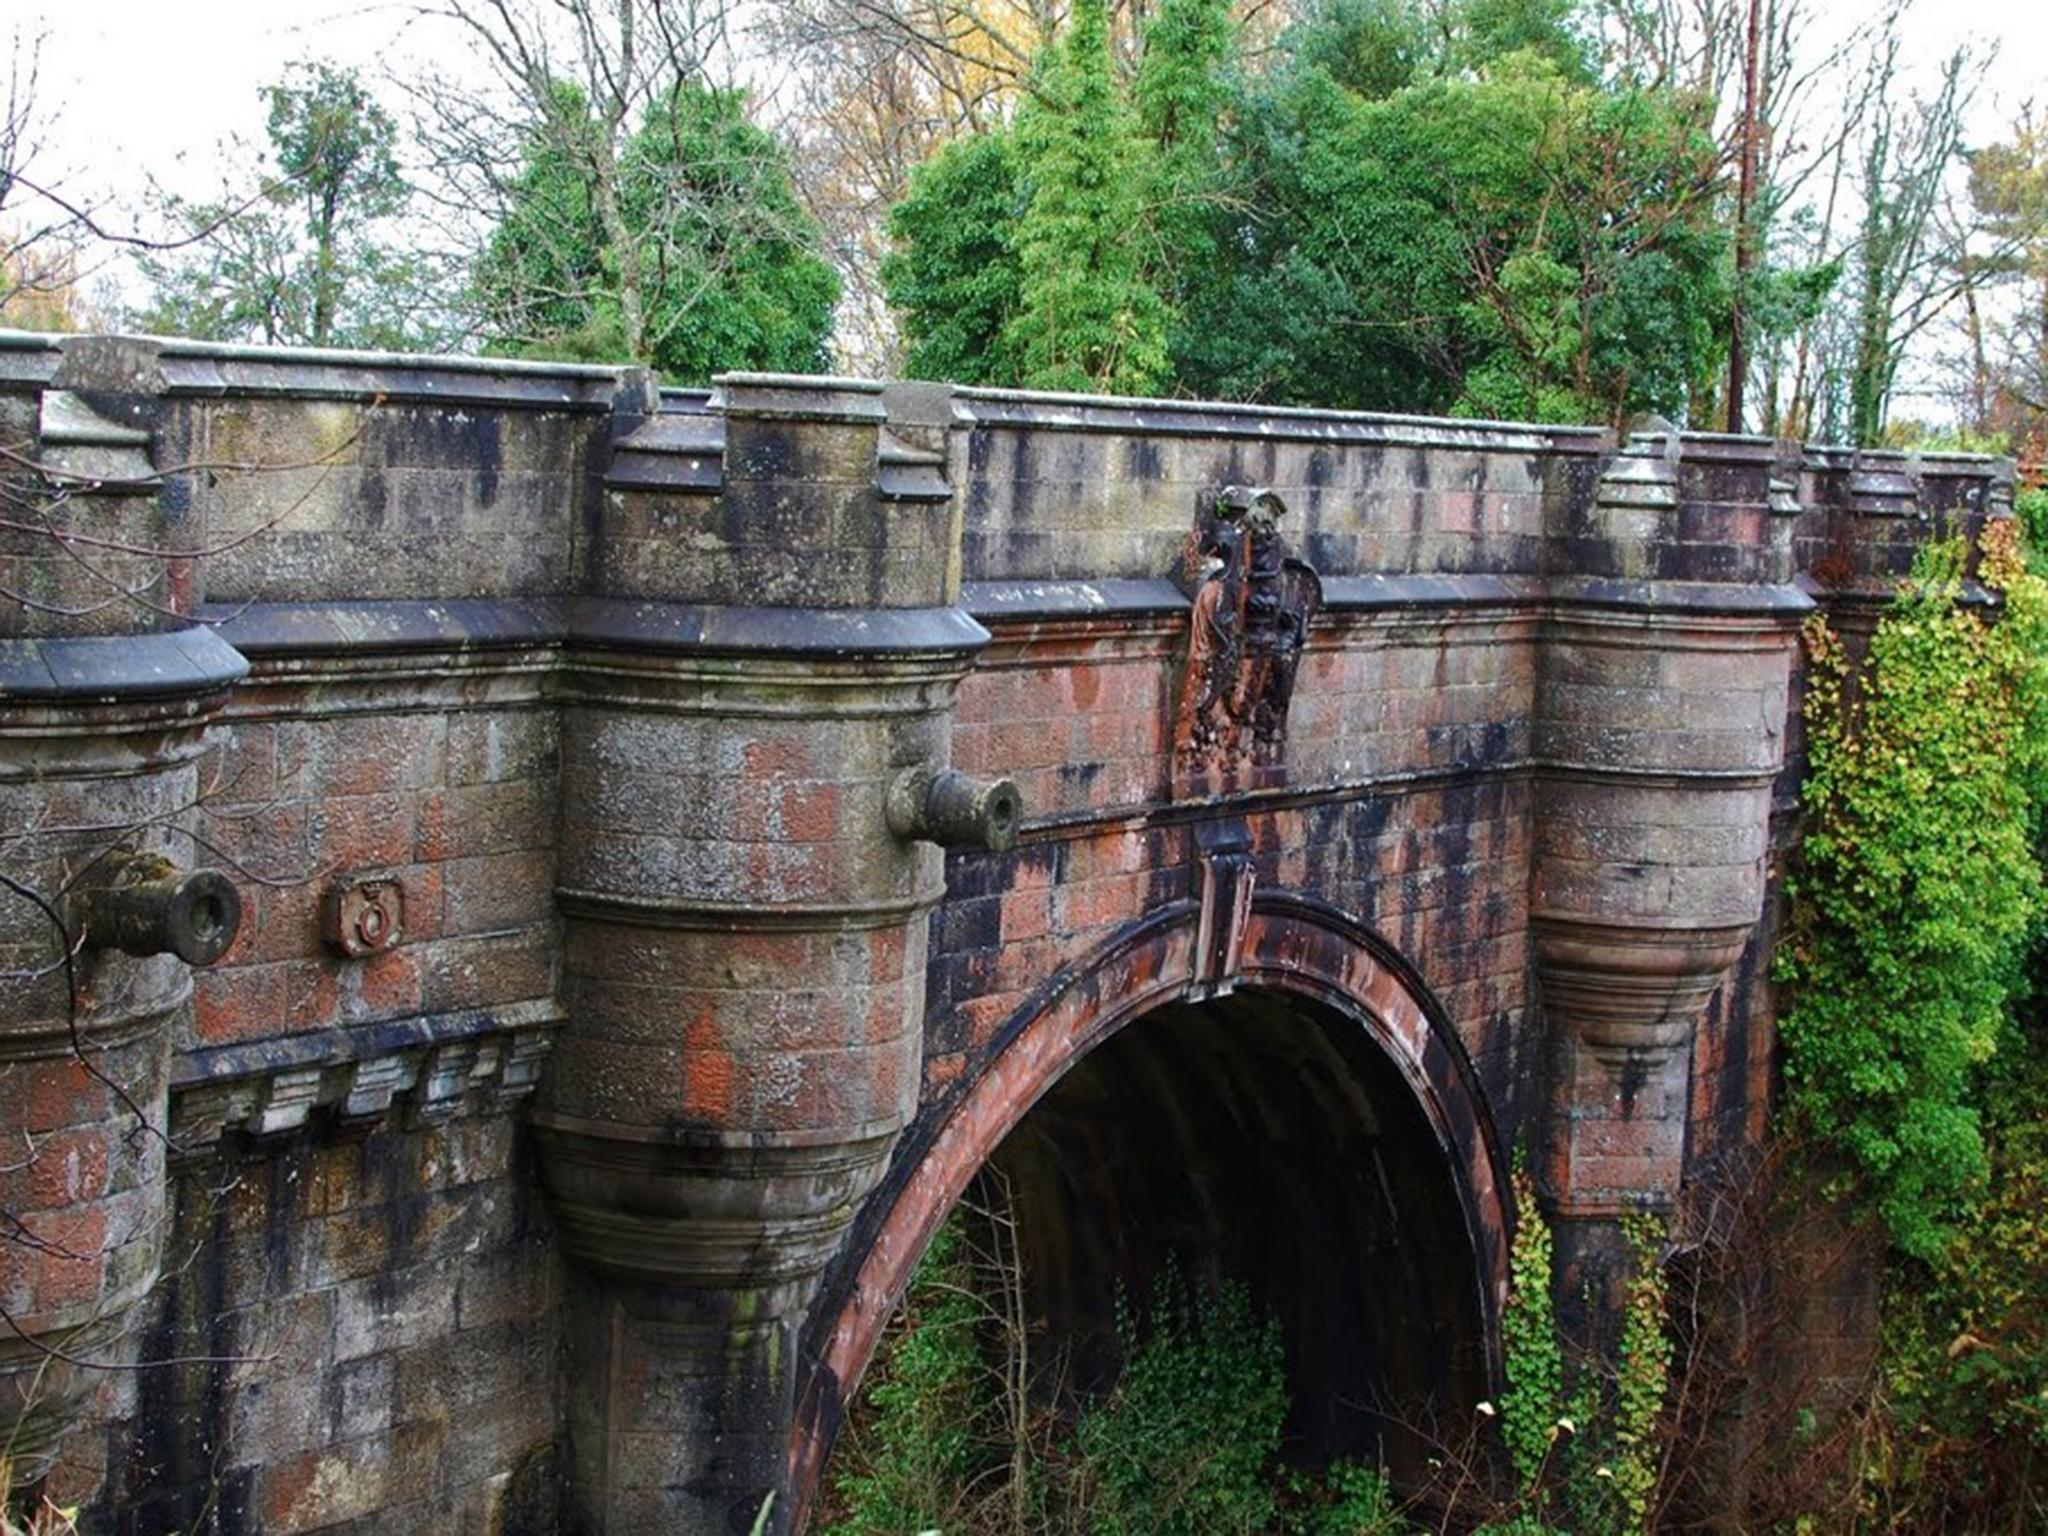 'Dog Suicide Bridge': Why do so many pets keep leaping into a Scottish gorge?